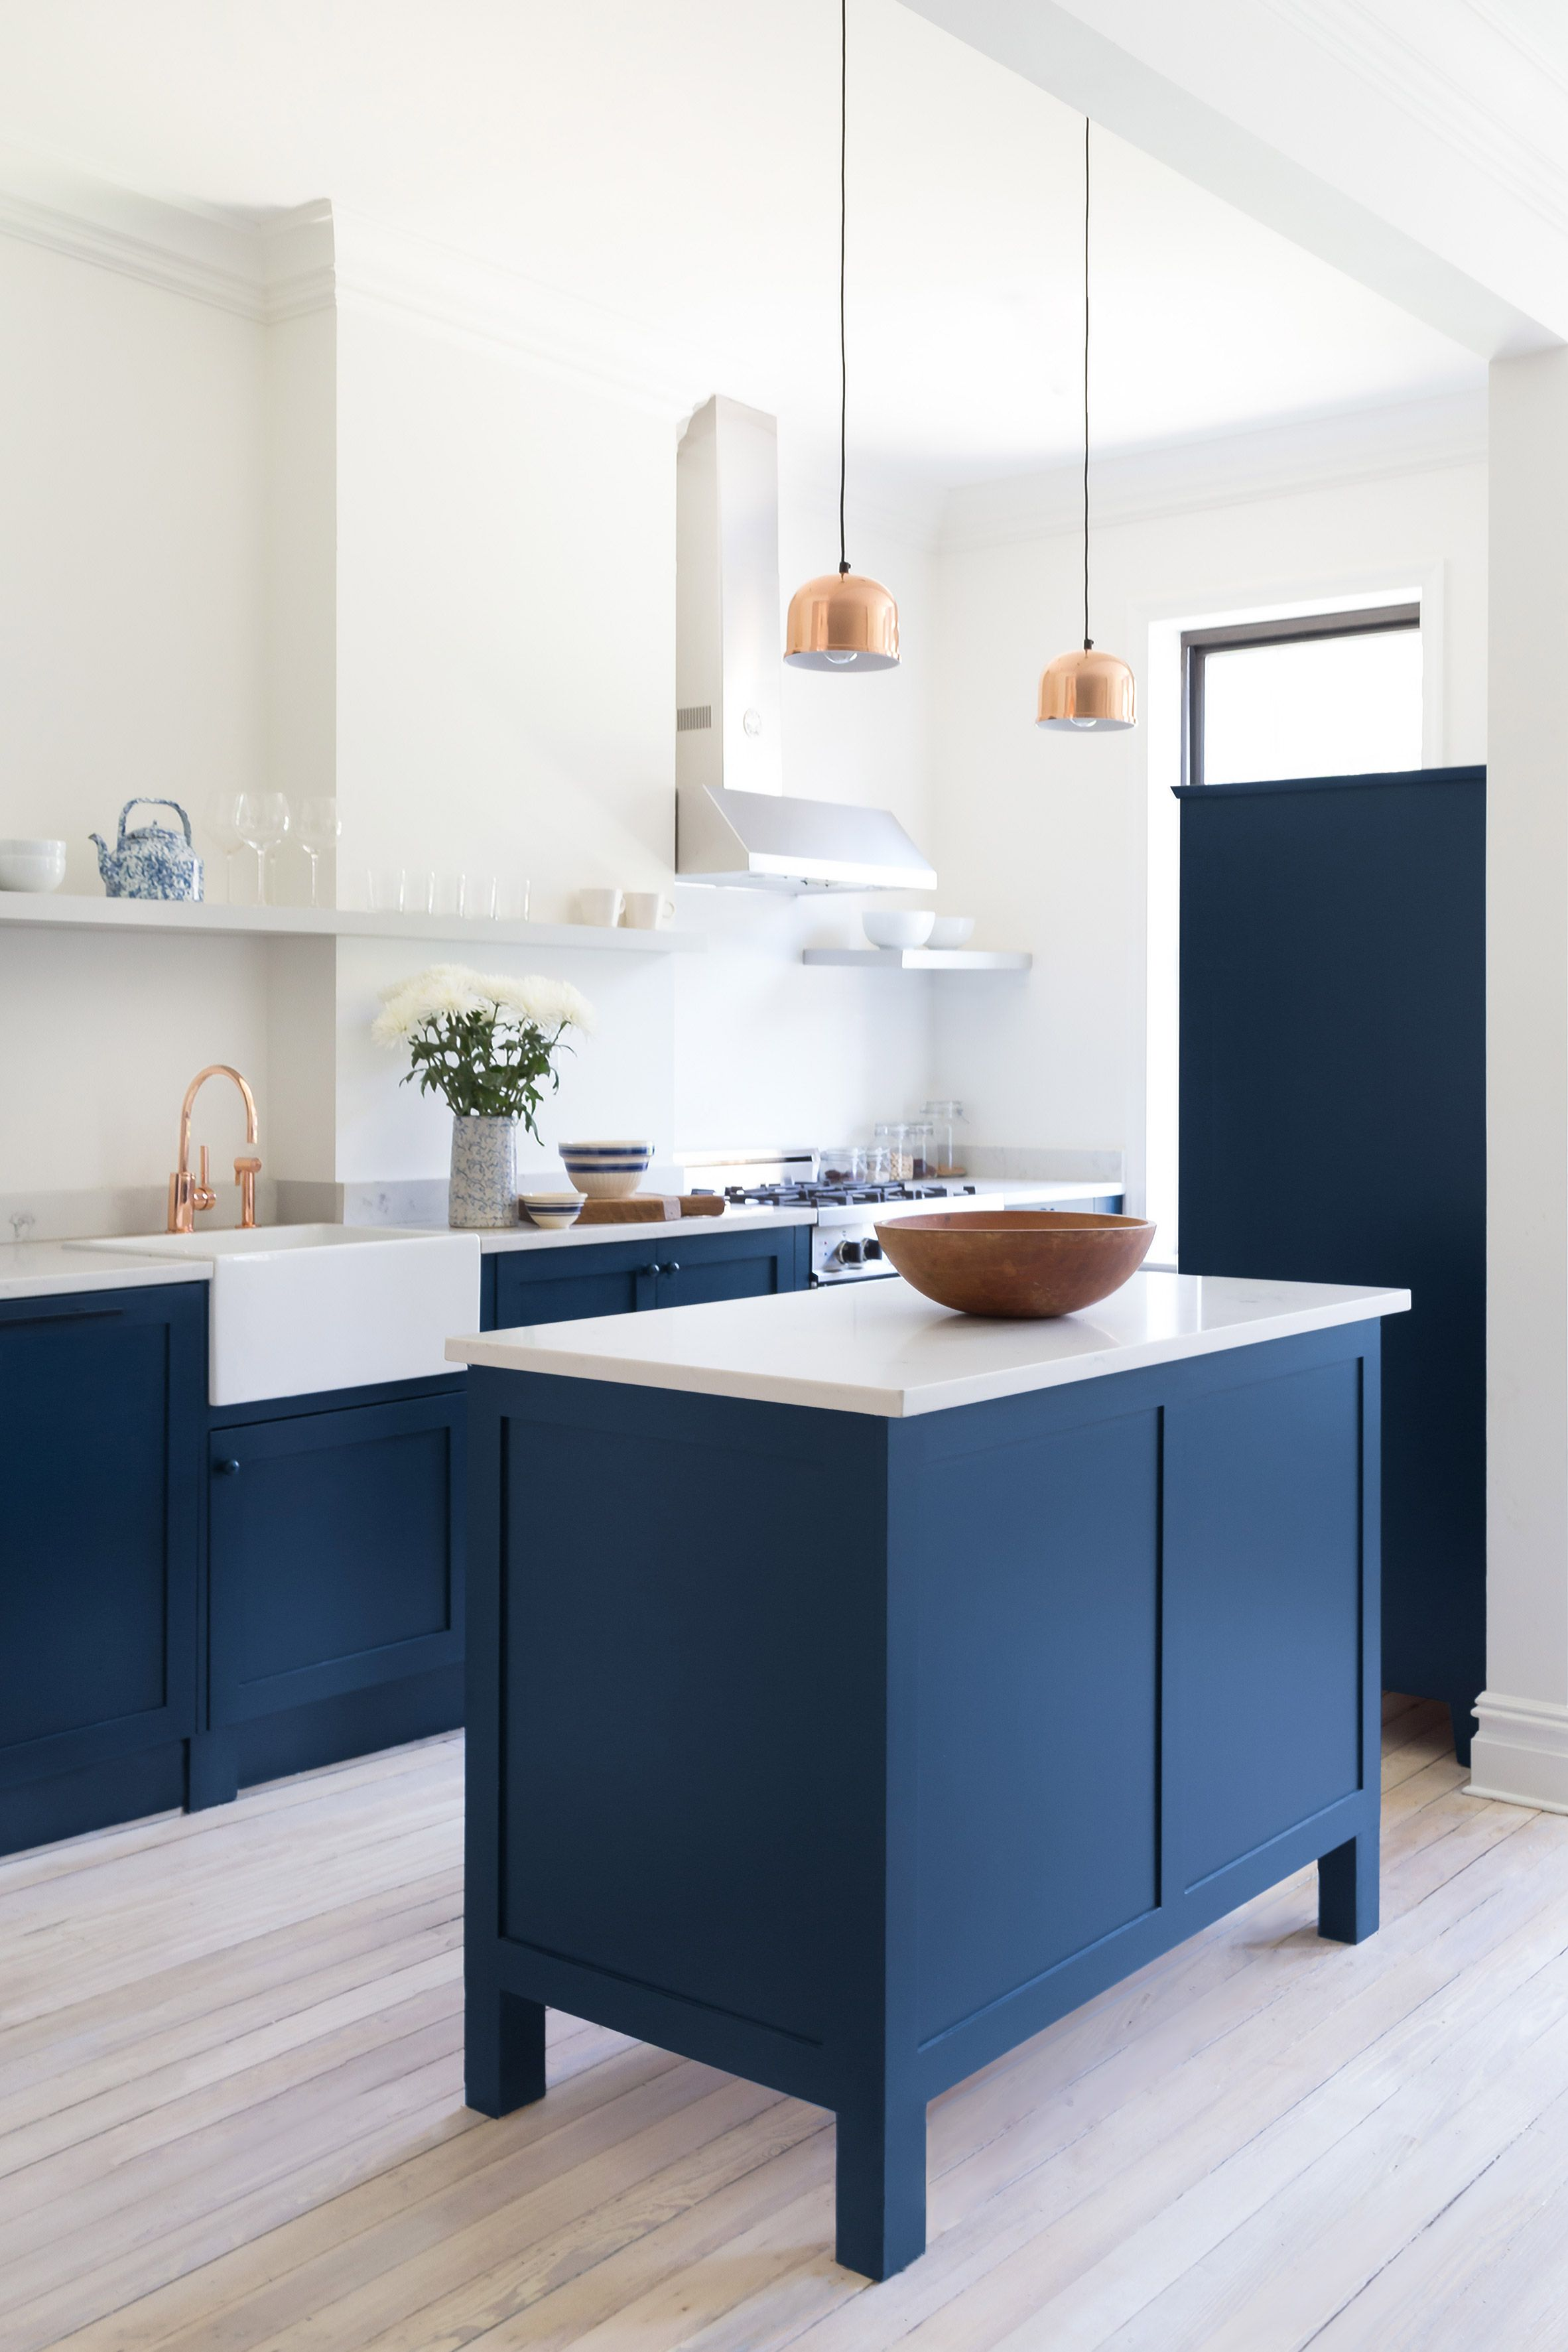 White Arrow Renovates Brooklyn Rowhouse With Navy Millwork And Modernist Furniture Blue Kitchen Cabinets Assembled Kitchen Cabinets Kitchen Interior